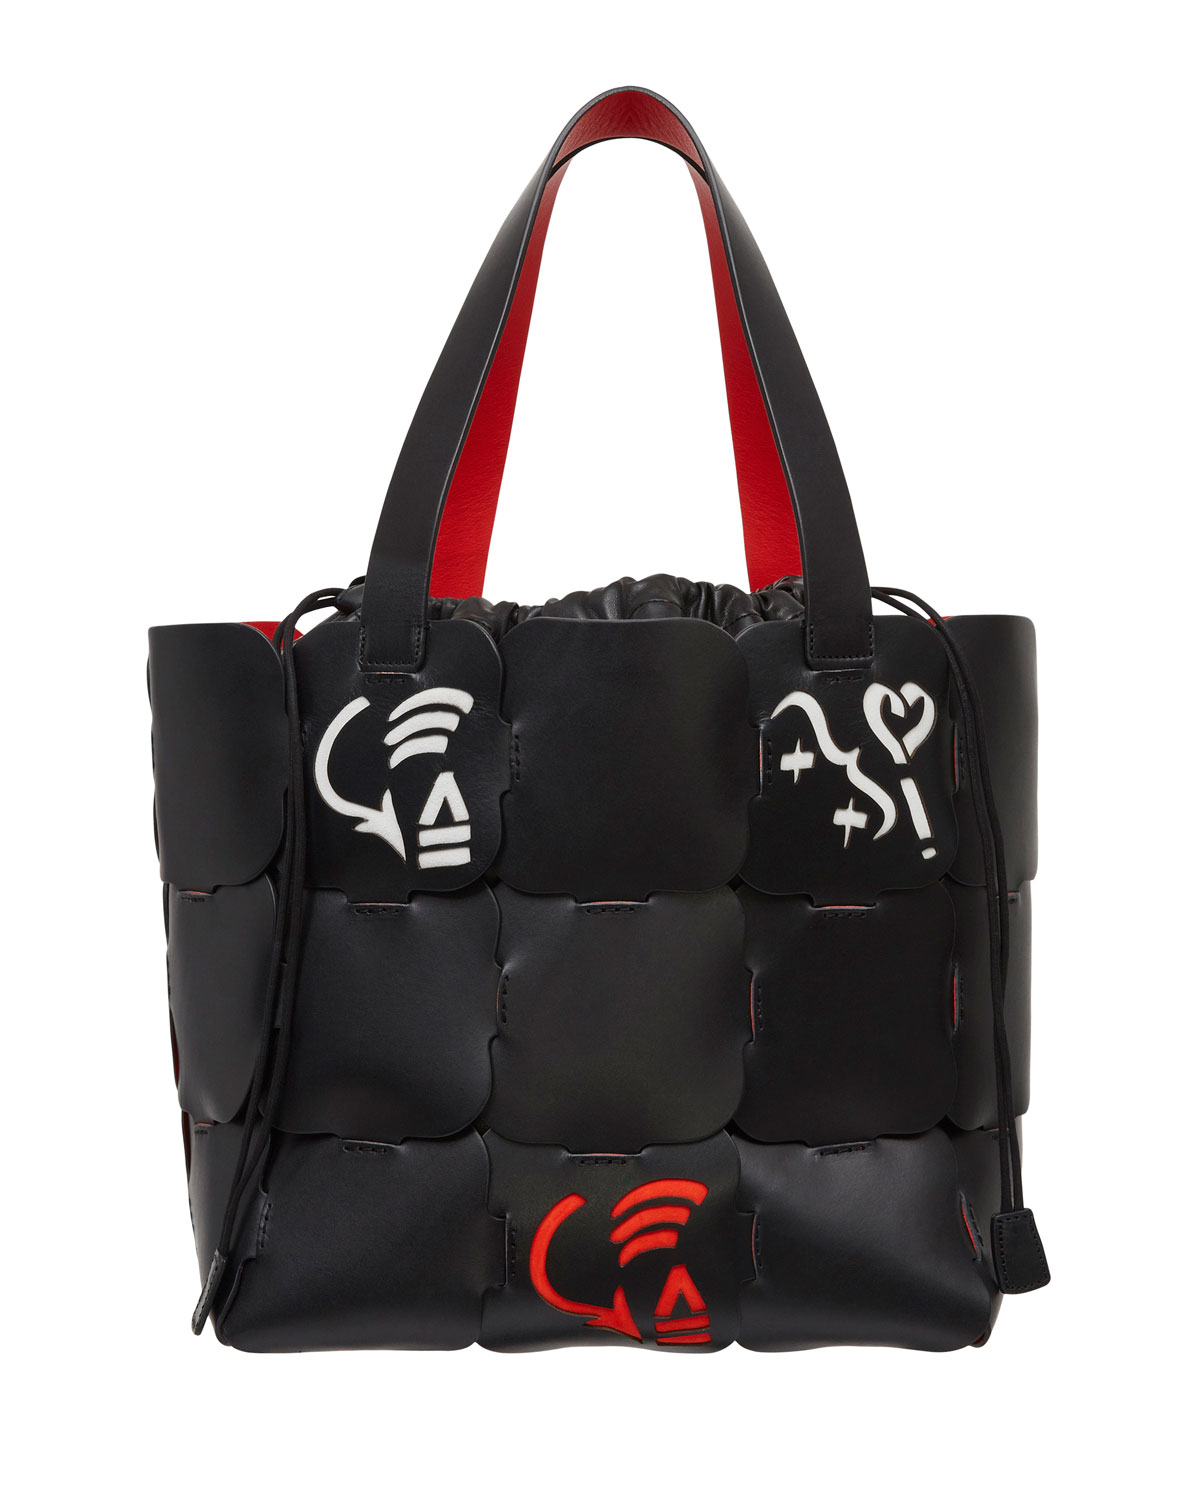 Cabas Painted Leather Tote Bag, Black Pattern